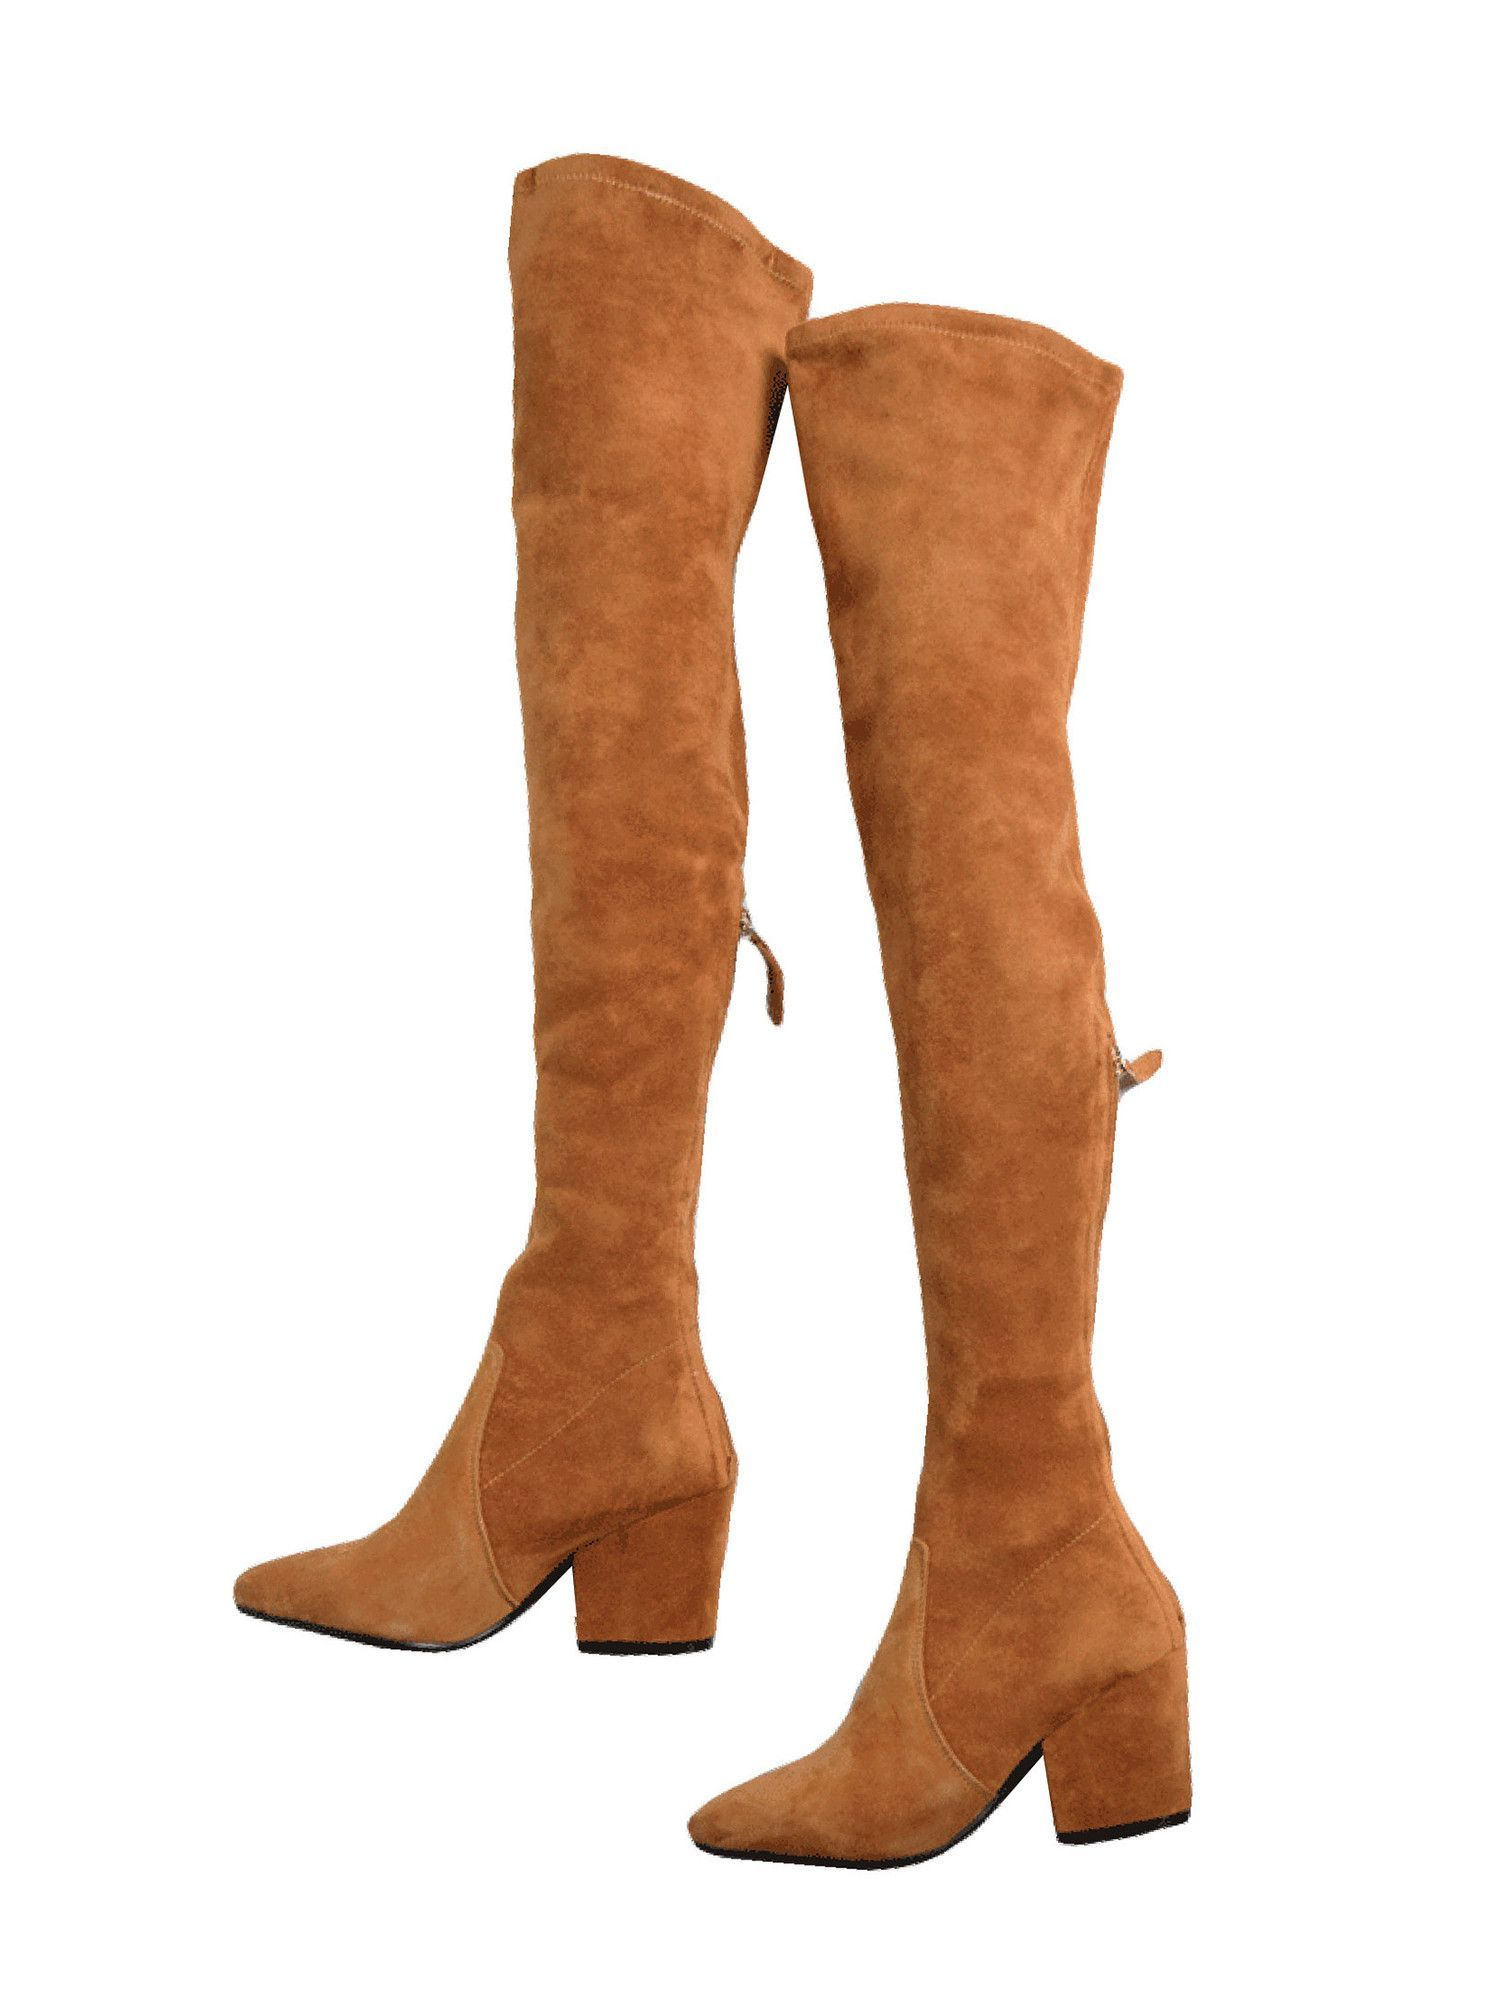 84b23bd354d Marlo  Tan Over The Knee Suede Leather Boots